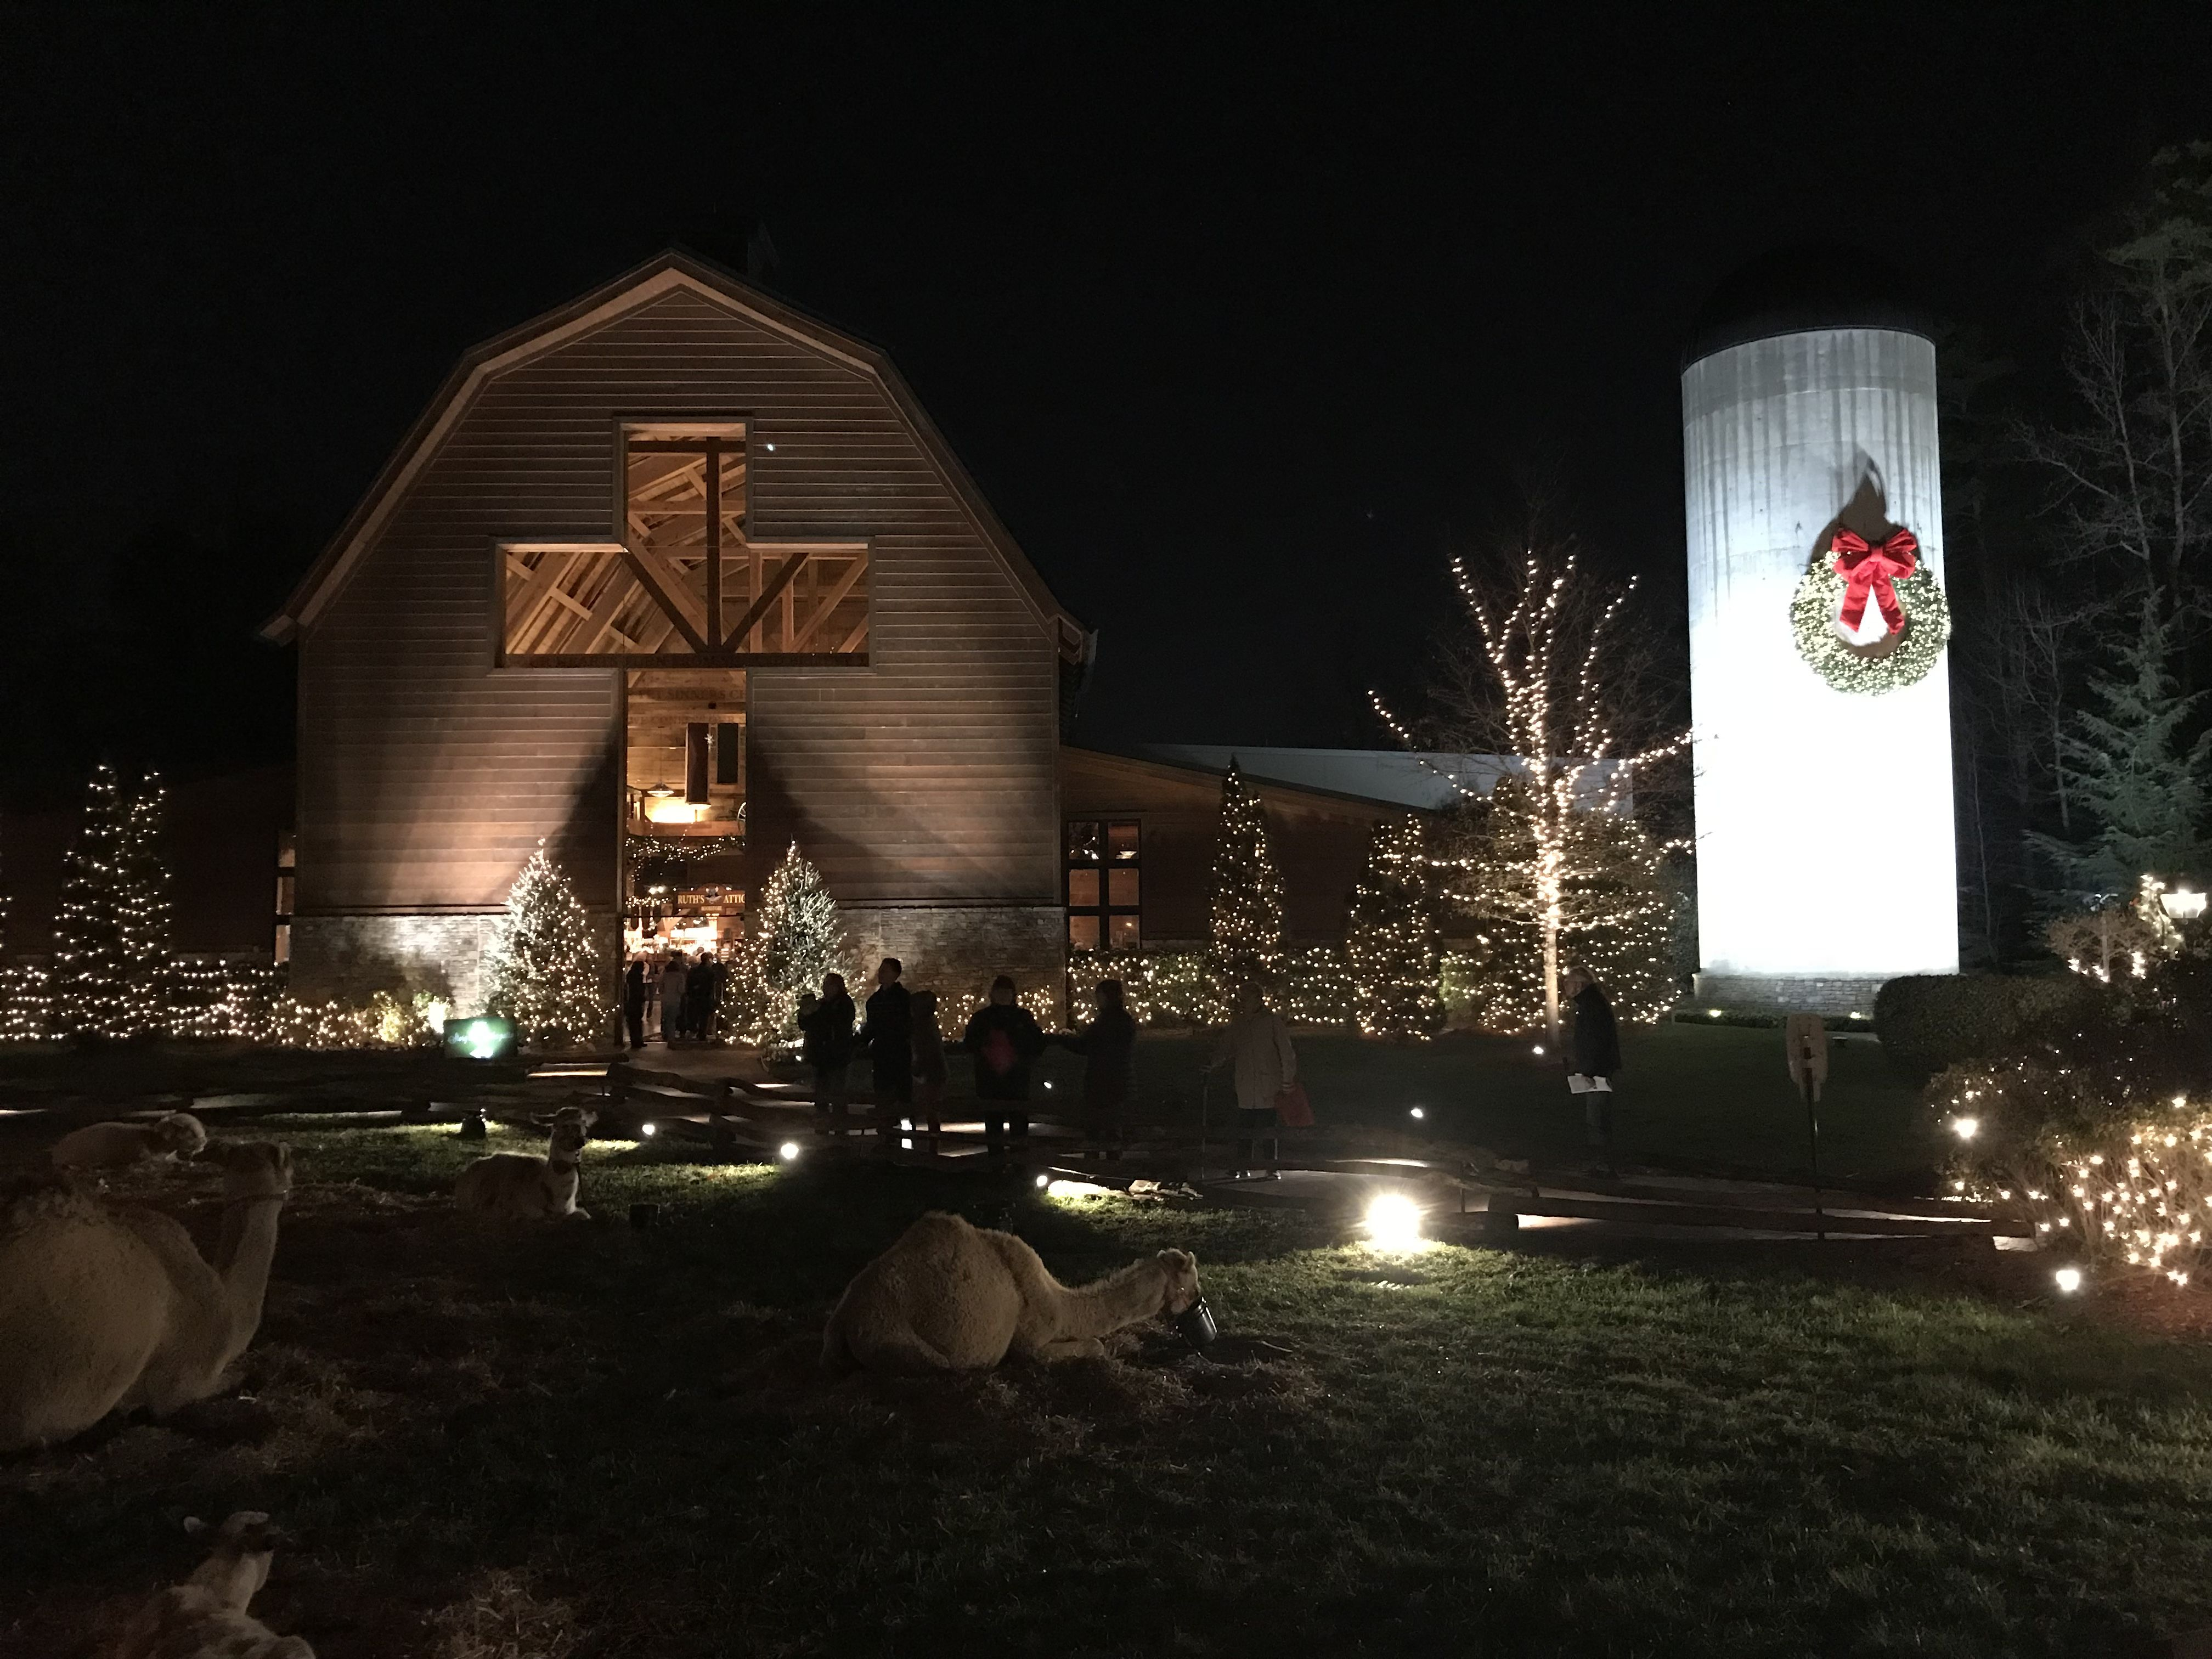 billy graham library at christmas charlotte nc live nativity barn with windows and wreath on silo shinewithjl barndoor barn visitnc christmas